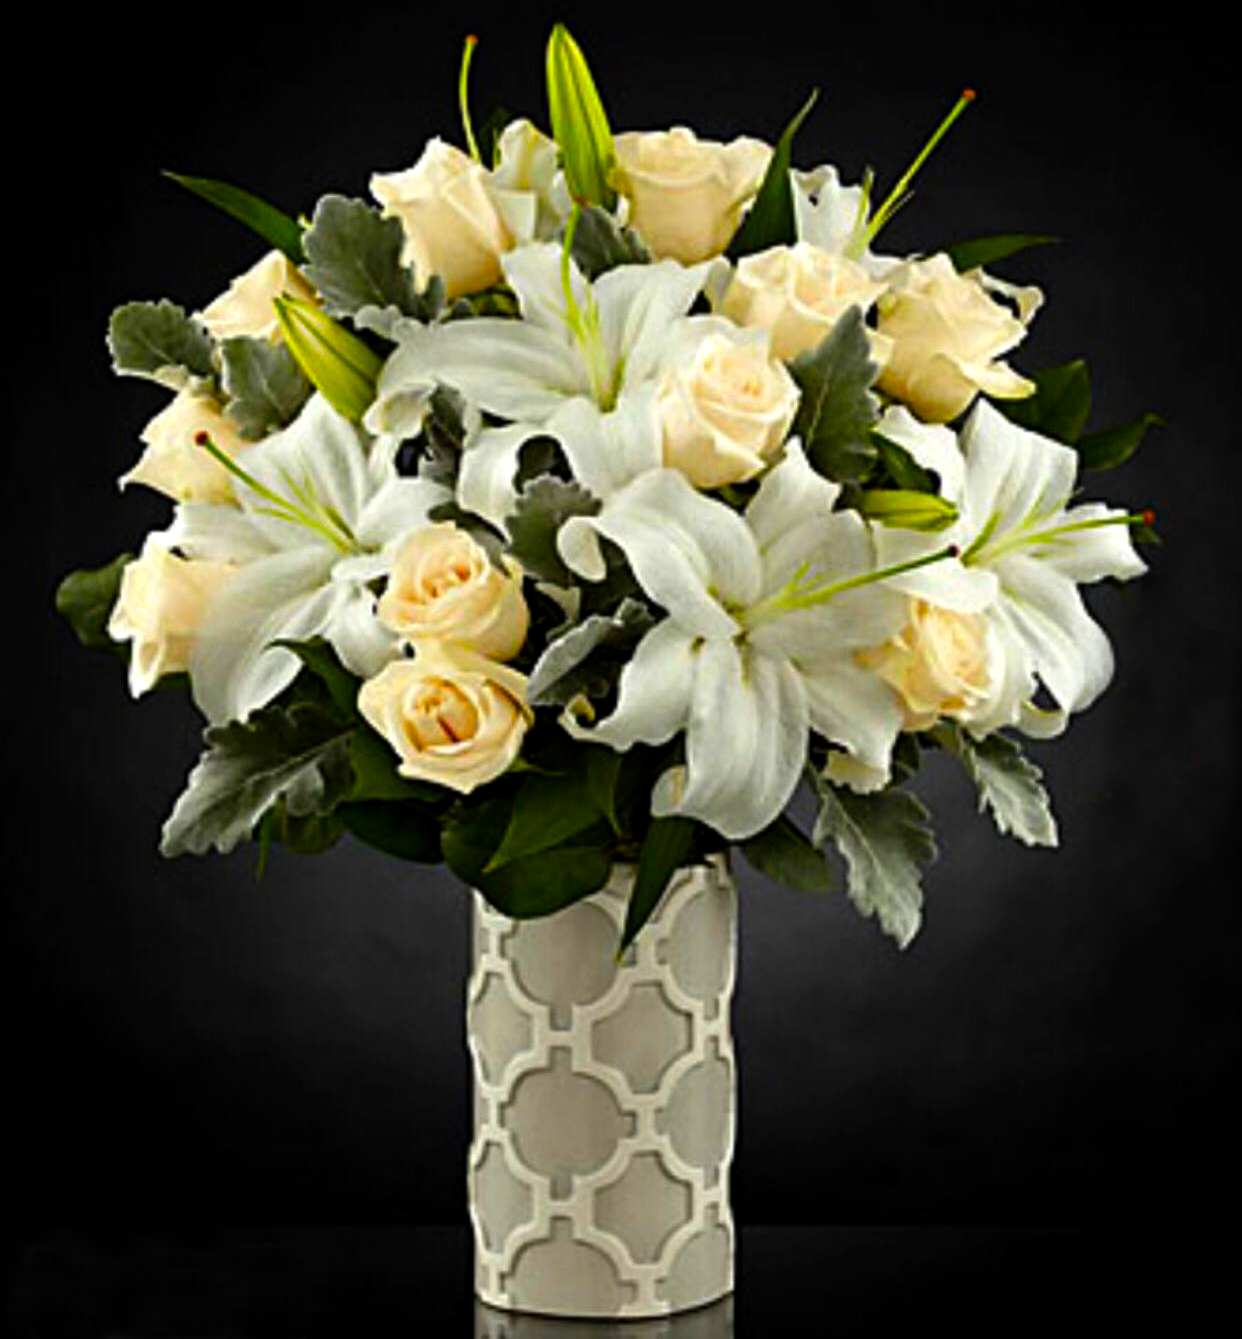 Gorgeous White Roses and White Lilies | Sunlight Flower Shop